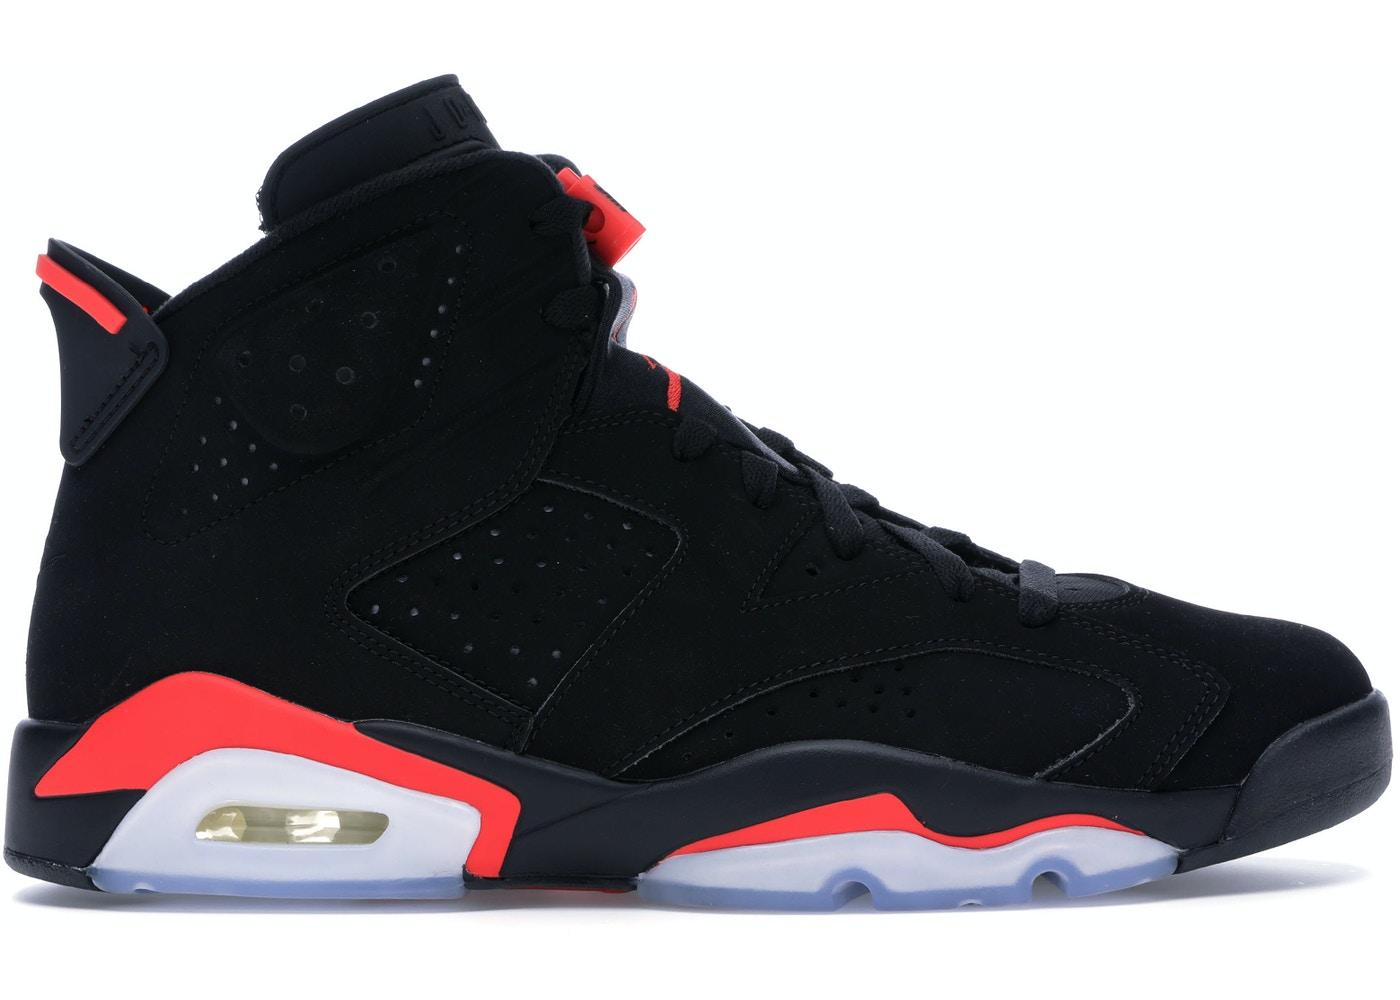 sports shoes 6eb11 6d92c Jordan 6 Retro Black Infrared (2019) - 384664-060